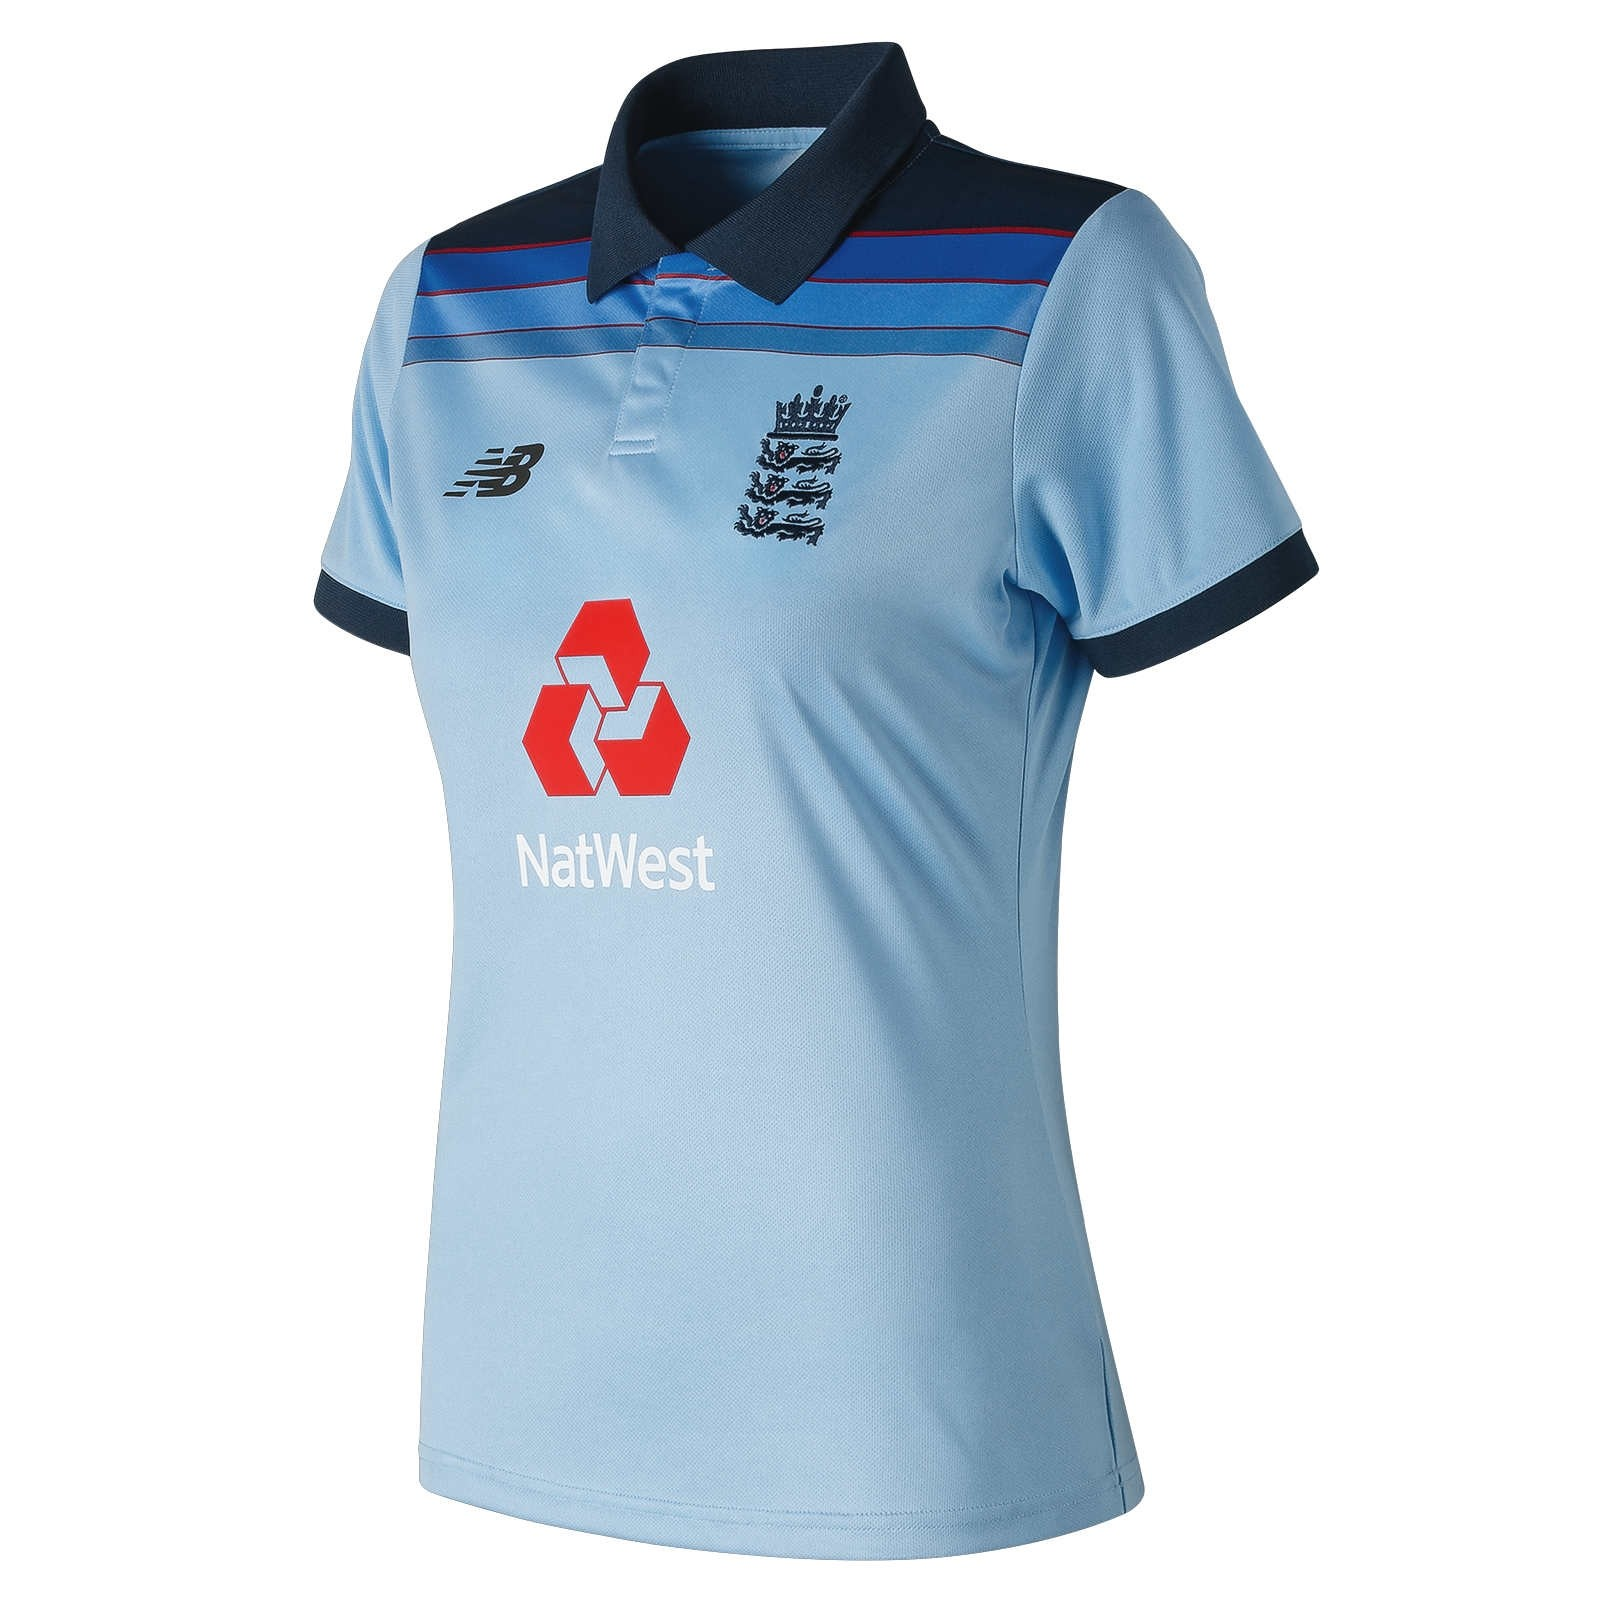 2019 New Balance England ODI Replica Womens Cricket Shirt